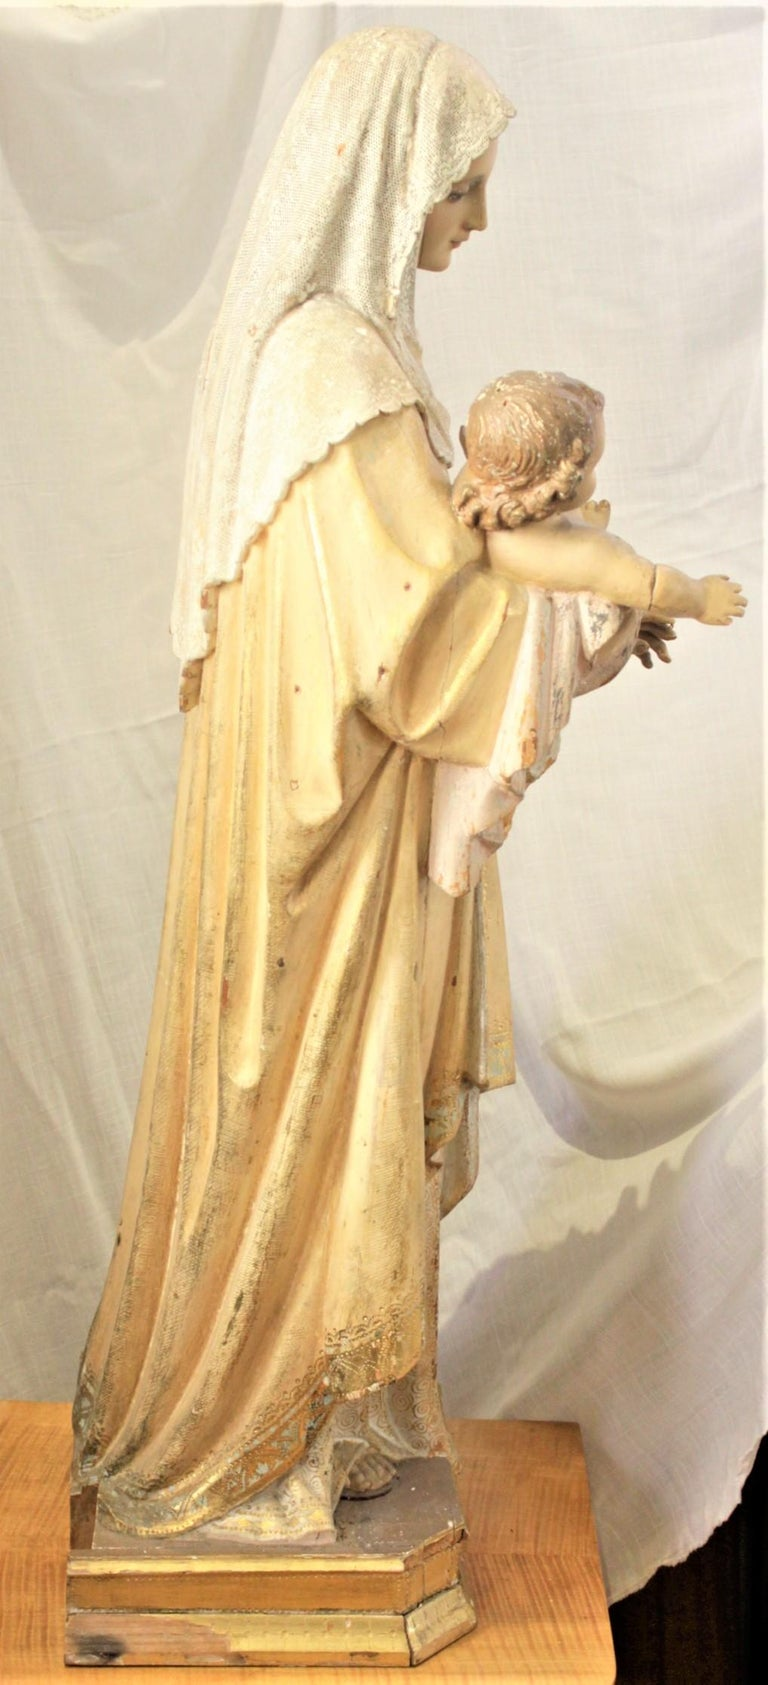 Pine Antique Hand-Carved & Polychrome Painted Sculpture of The Madonna and Child For Sale